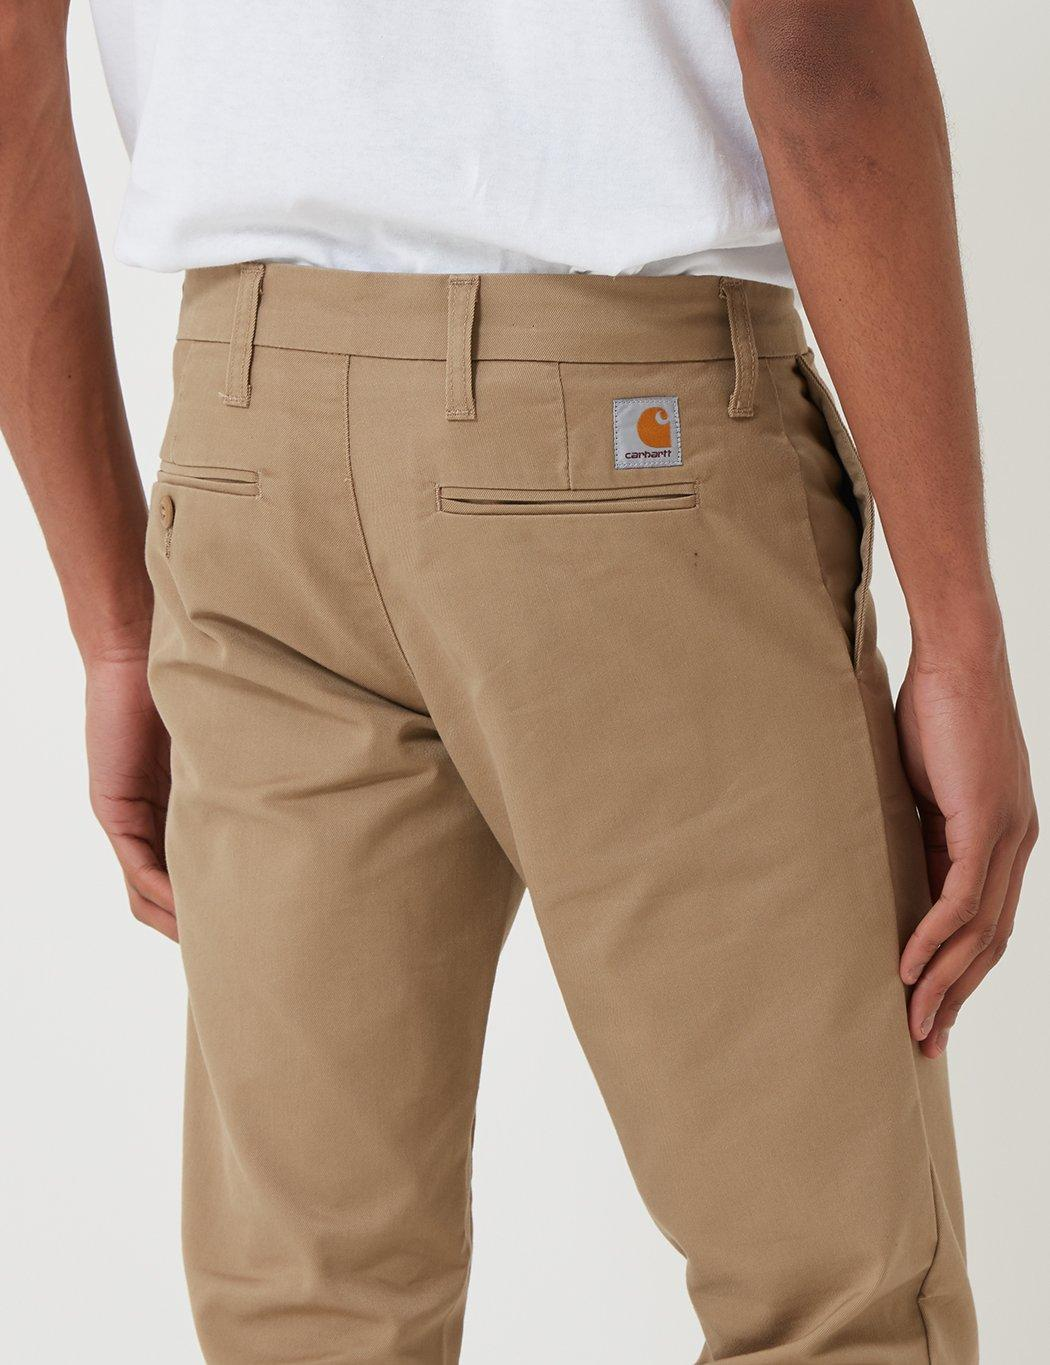 c5a4ab98 Carhartt Sid Pant Chino (slim) in Natural for Men - Lyst